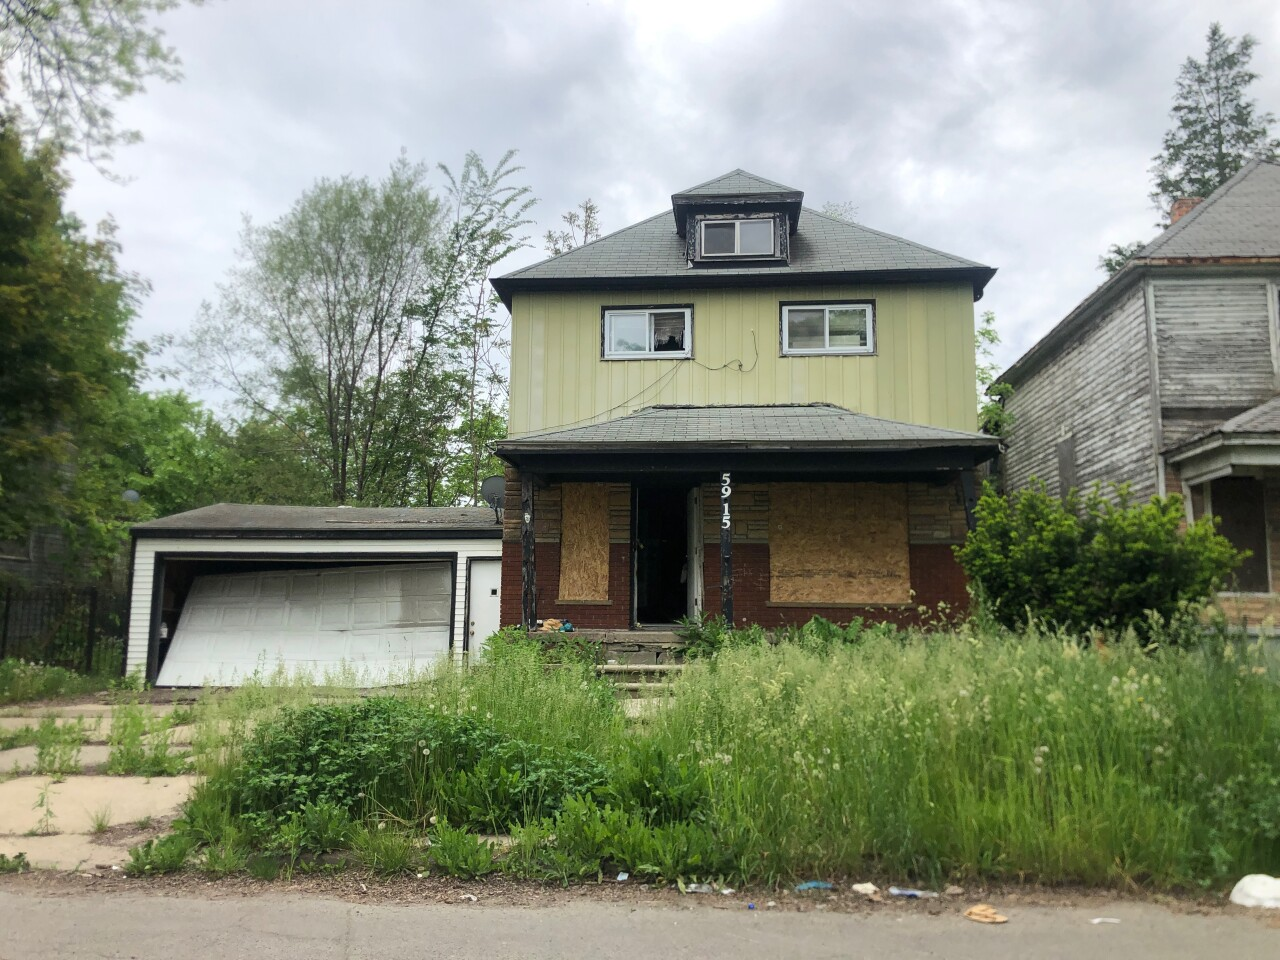 5915 Vancourt, a property purchased by Sam Jaser at the 2018 Wayne County Tax Auction for $500, on May 27, 2020.